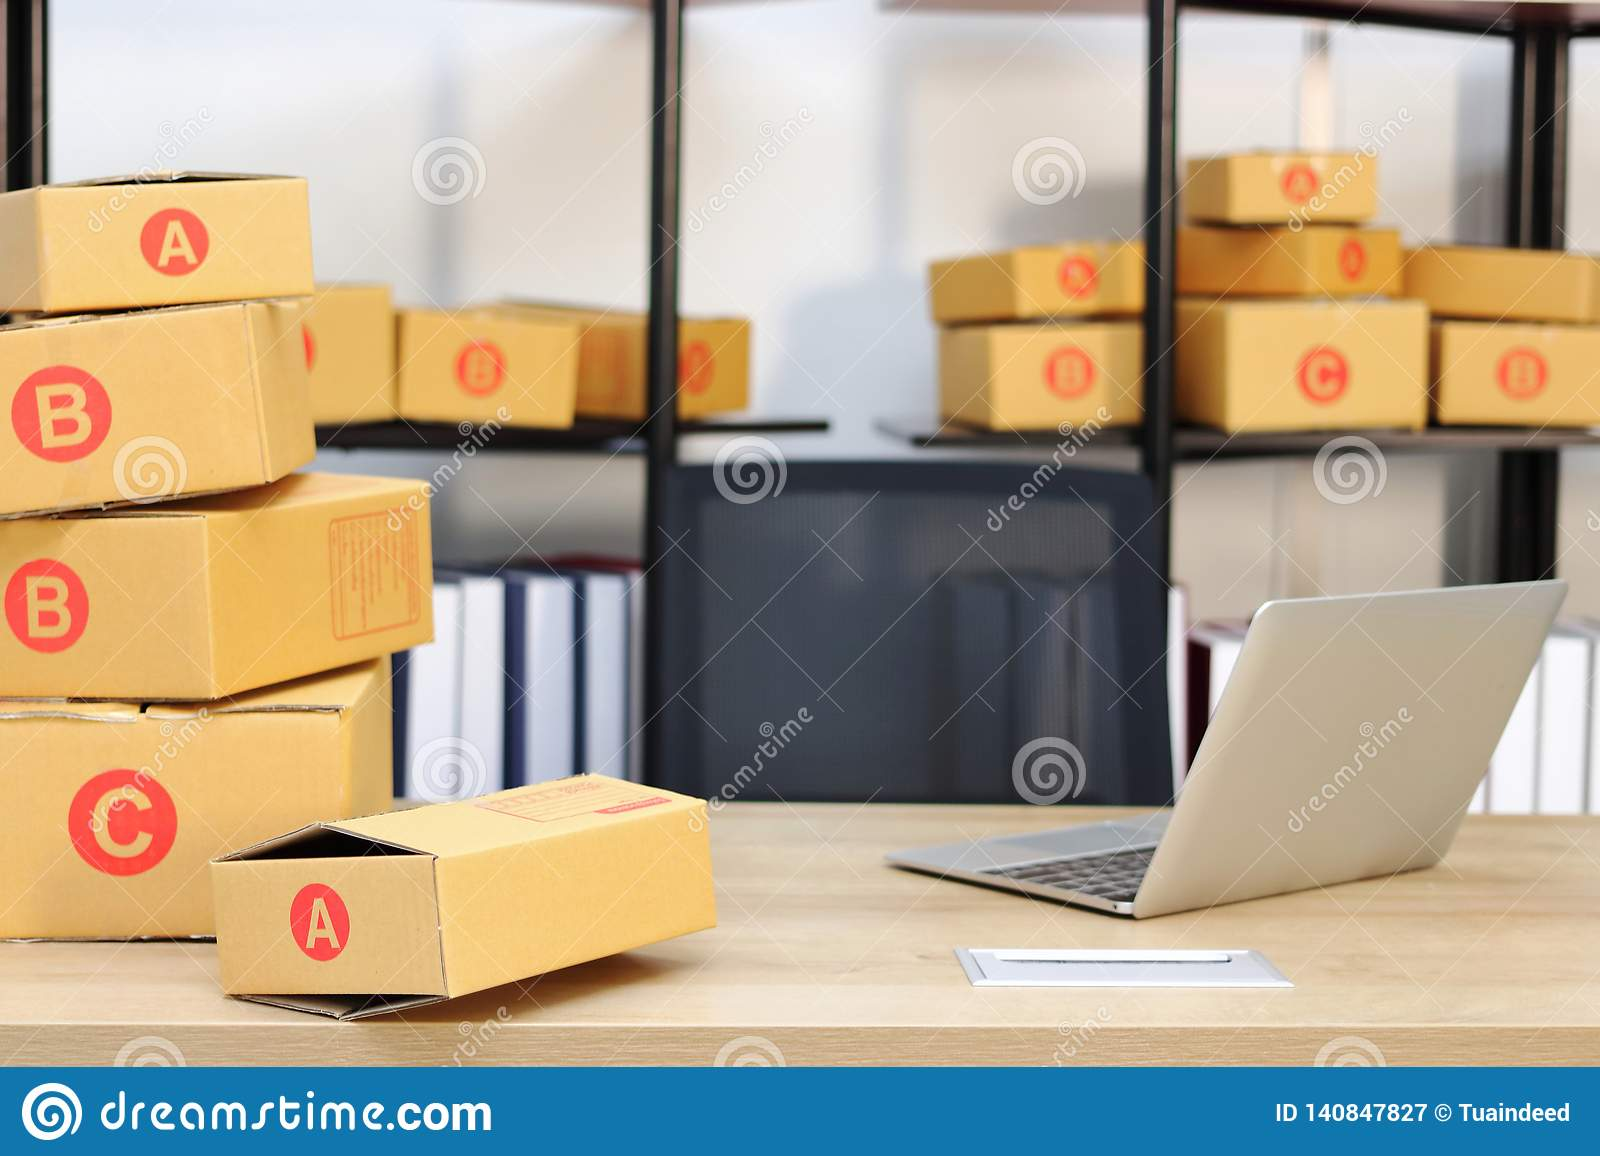 Cardboard box on workplace at home. Start up small business